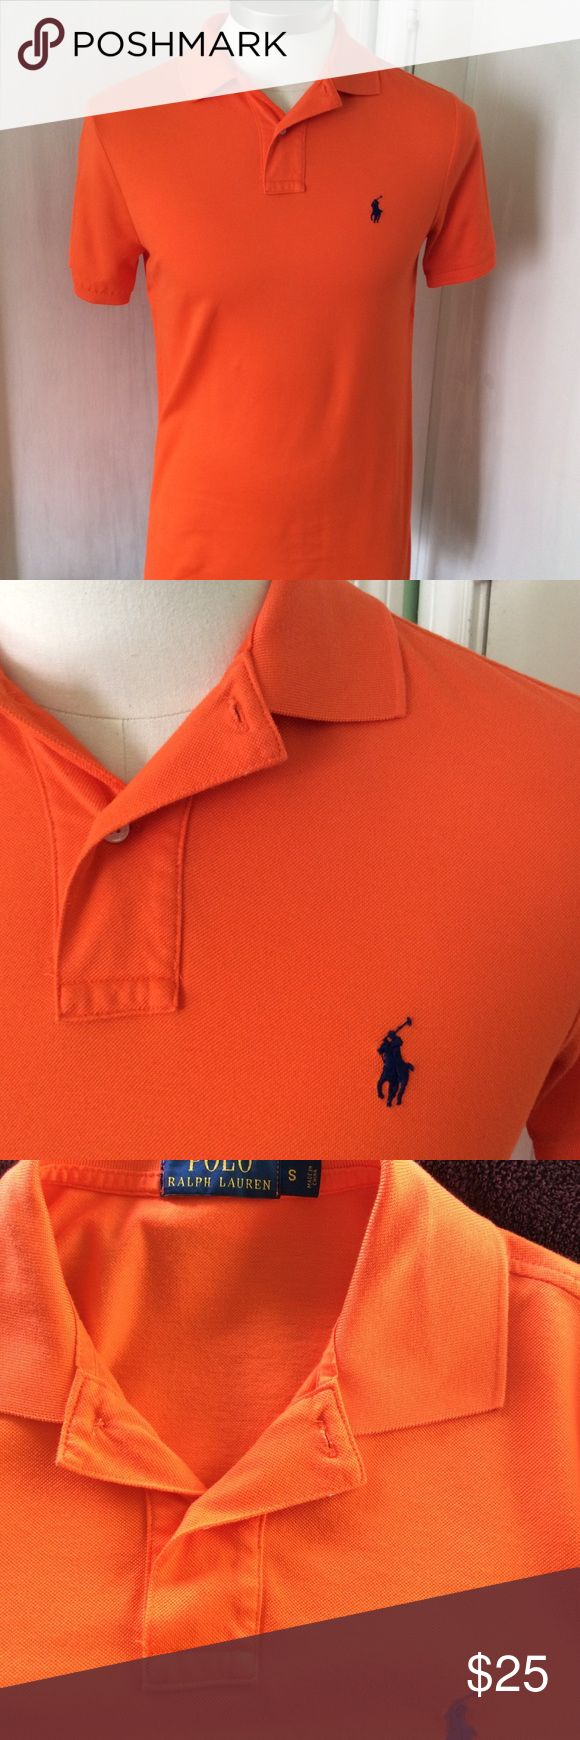 Men's Polo Ralph Lauren Shirt Sleeve  Polo Orange, 100% Cotton (mercerized), short sleeve polo shirt.  Classic Fit.  It is slightly different from the regular Mesh cotton polo shirt.  It is mercerized cotton, so a little dressier look and touch. Polo by Ralph Lauren Shirts Polos